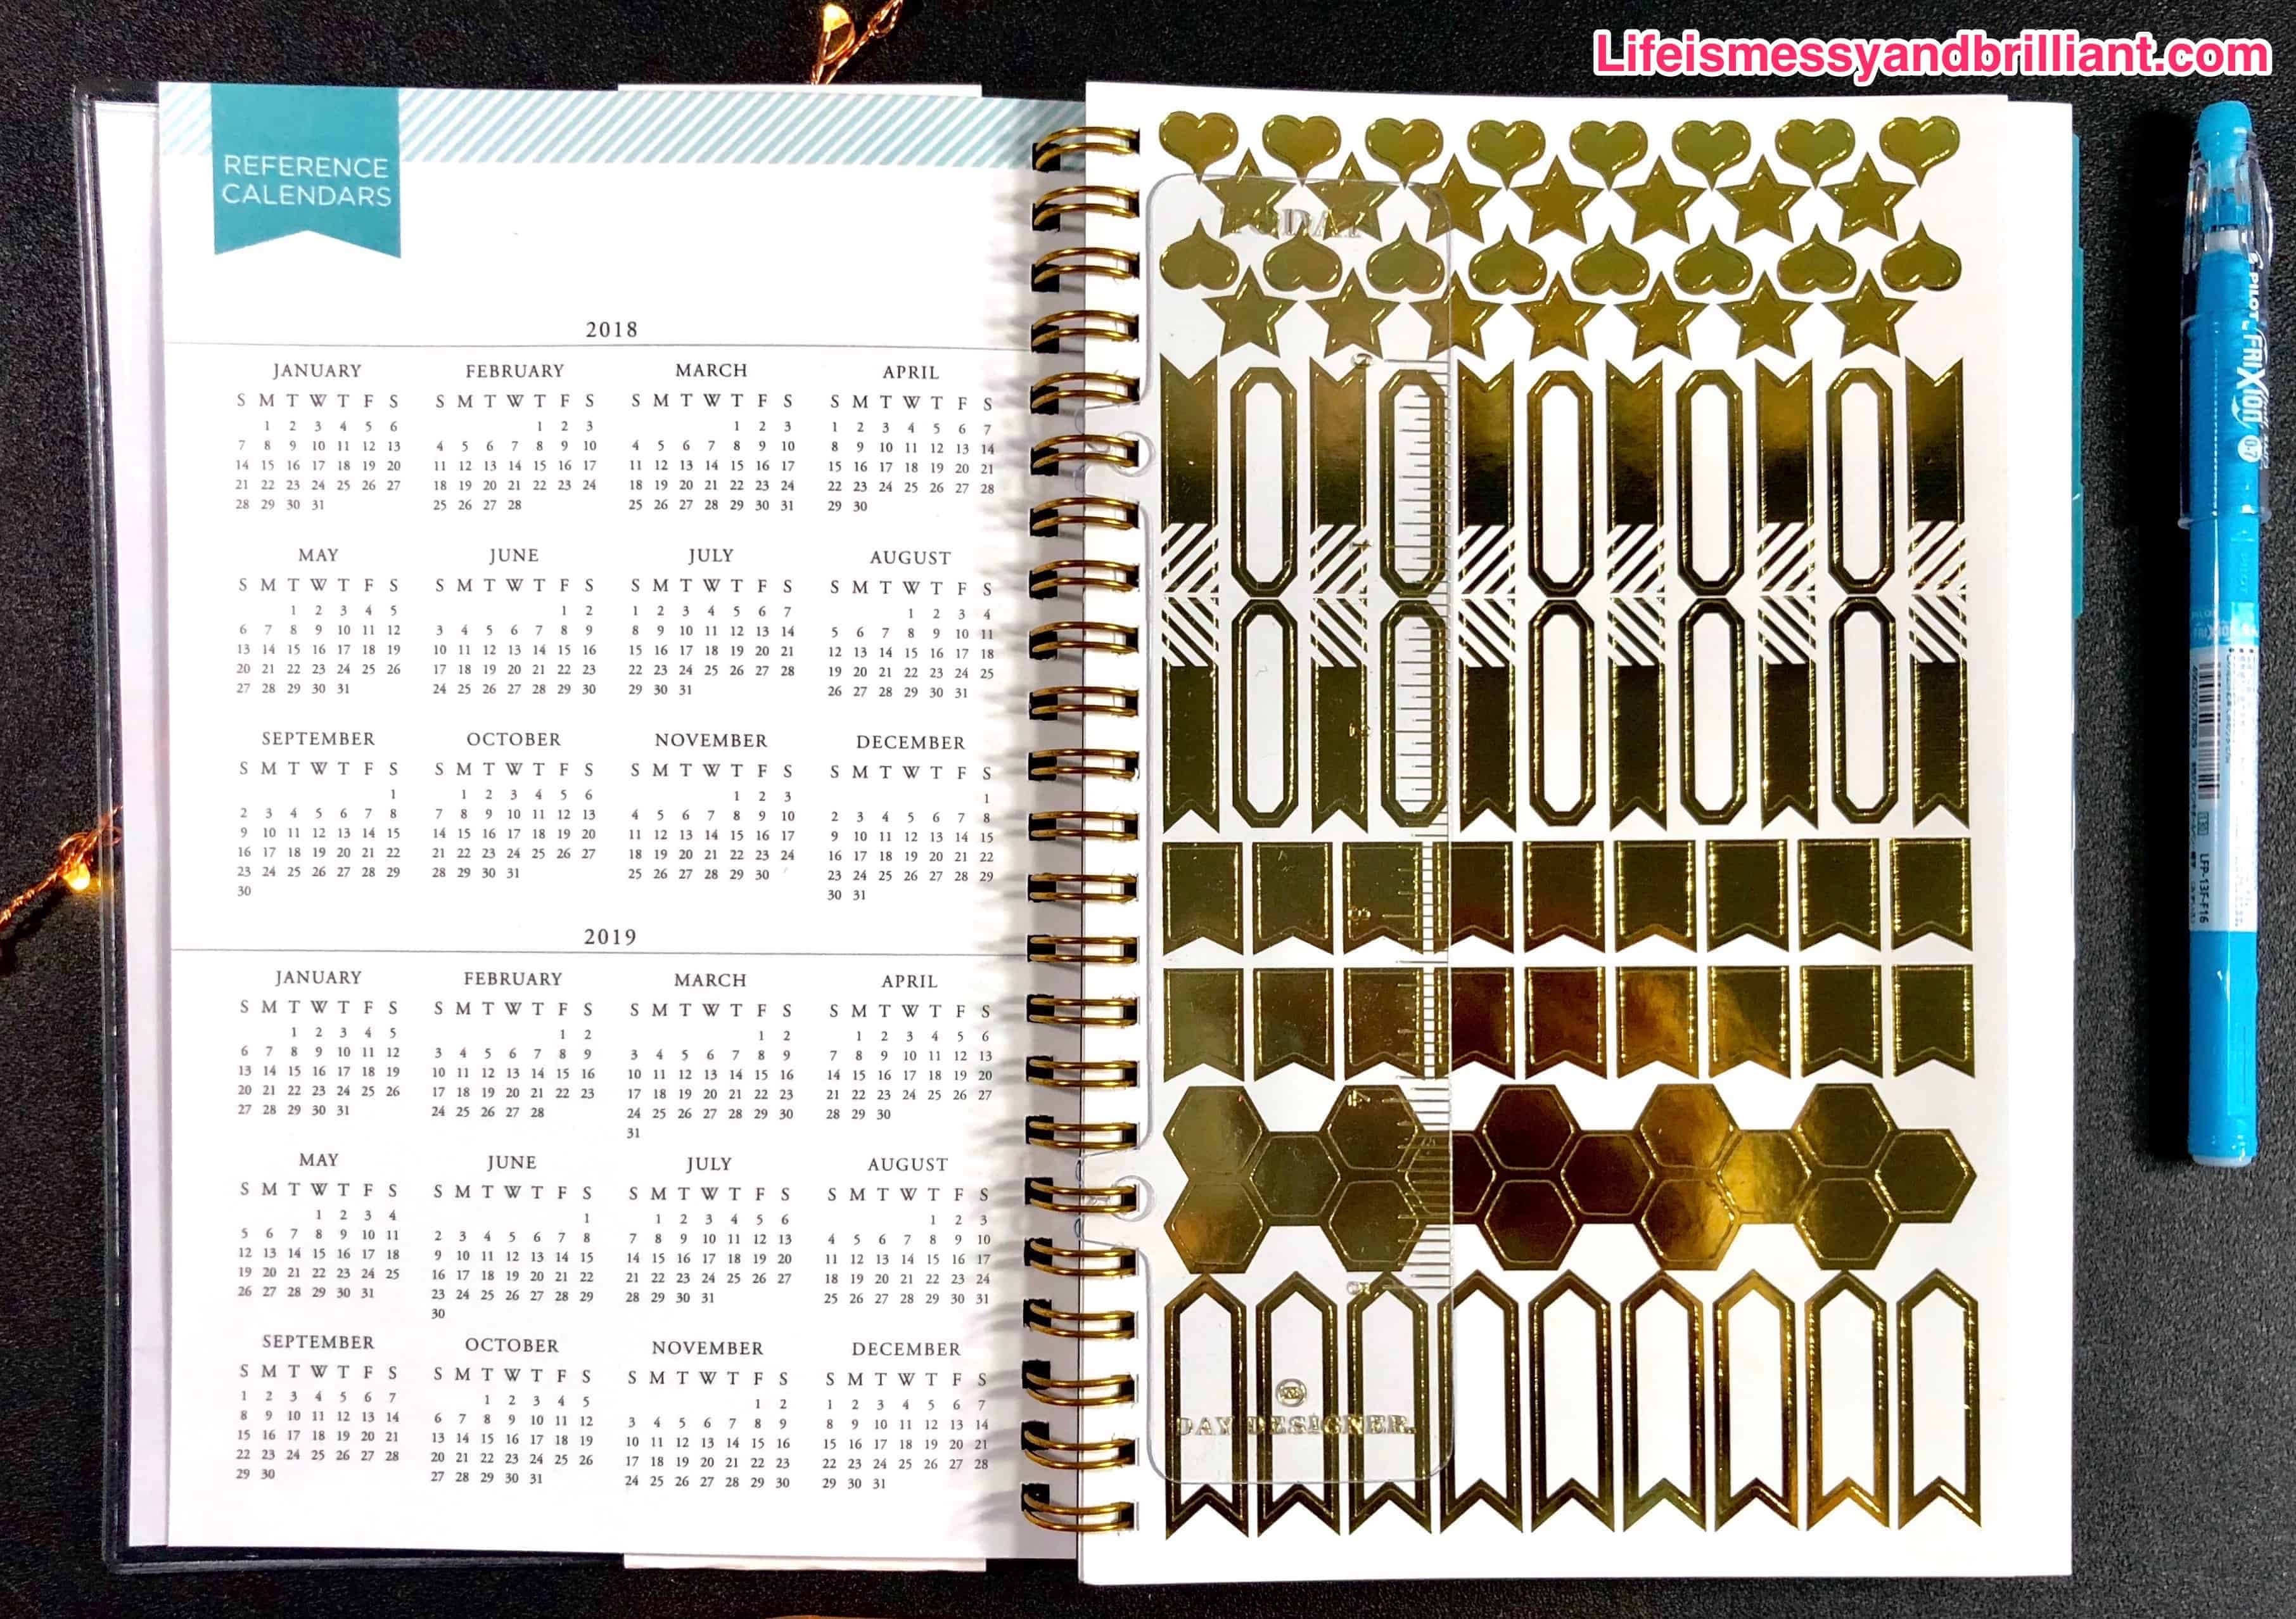 the best school planners for college students 2018 2019